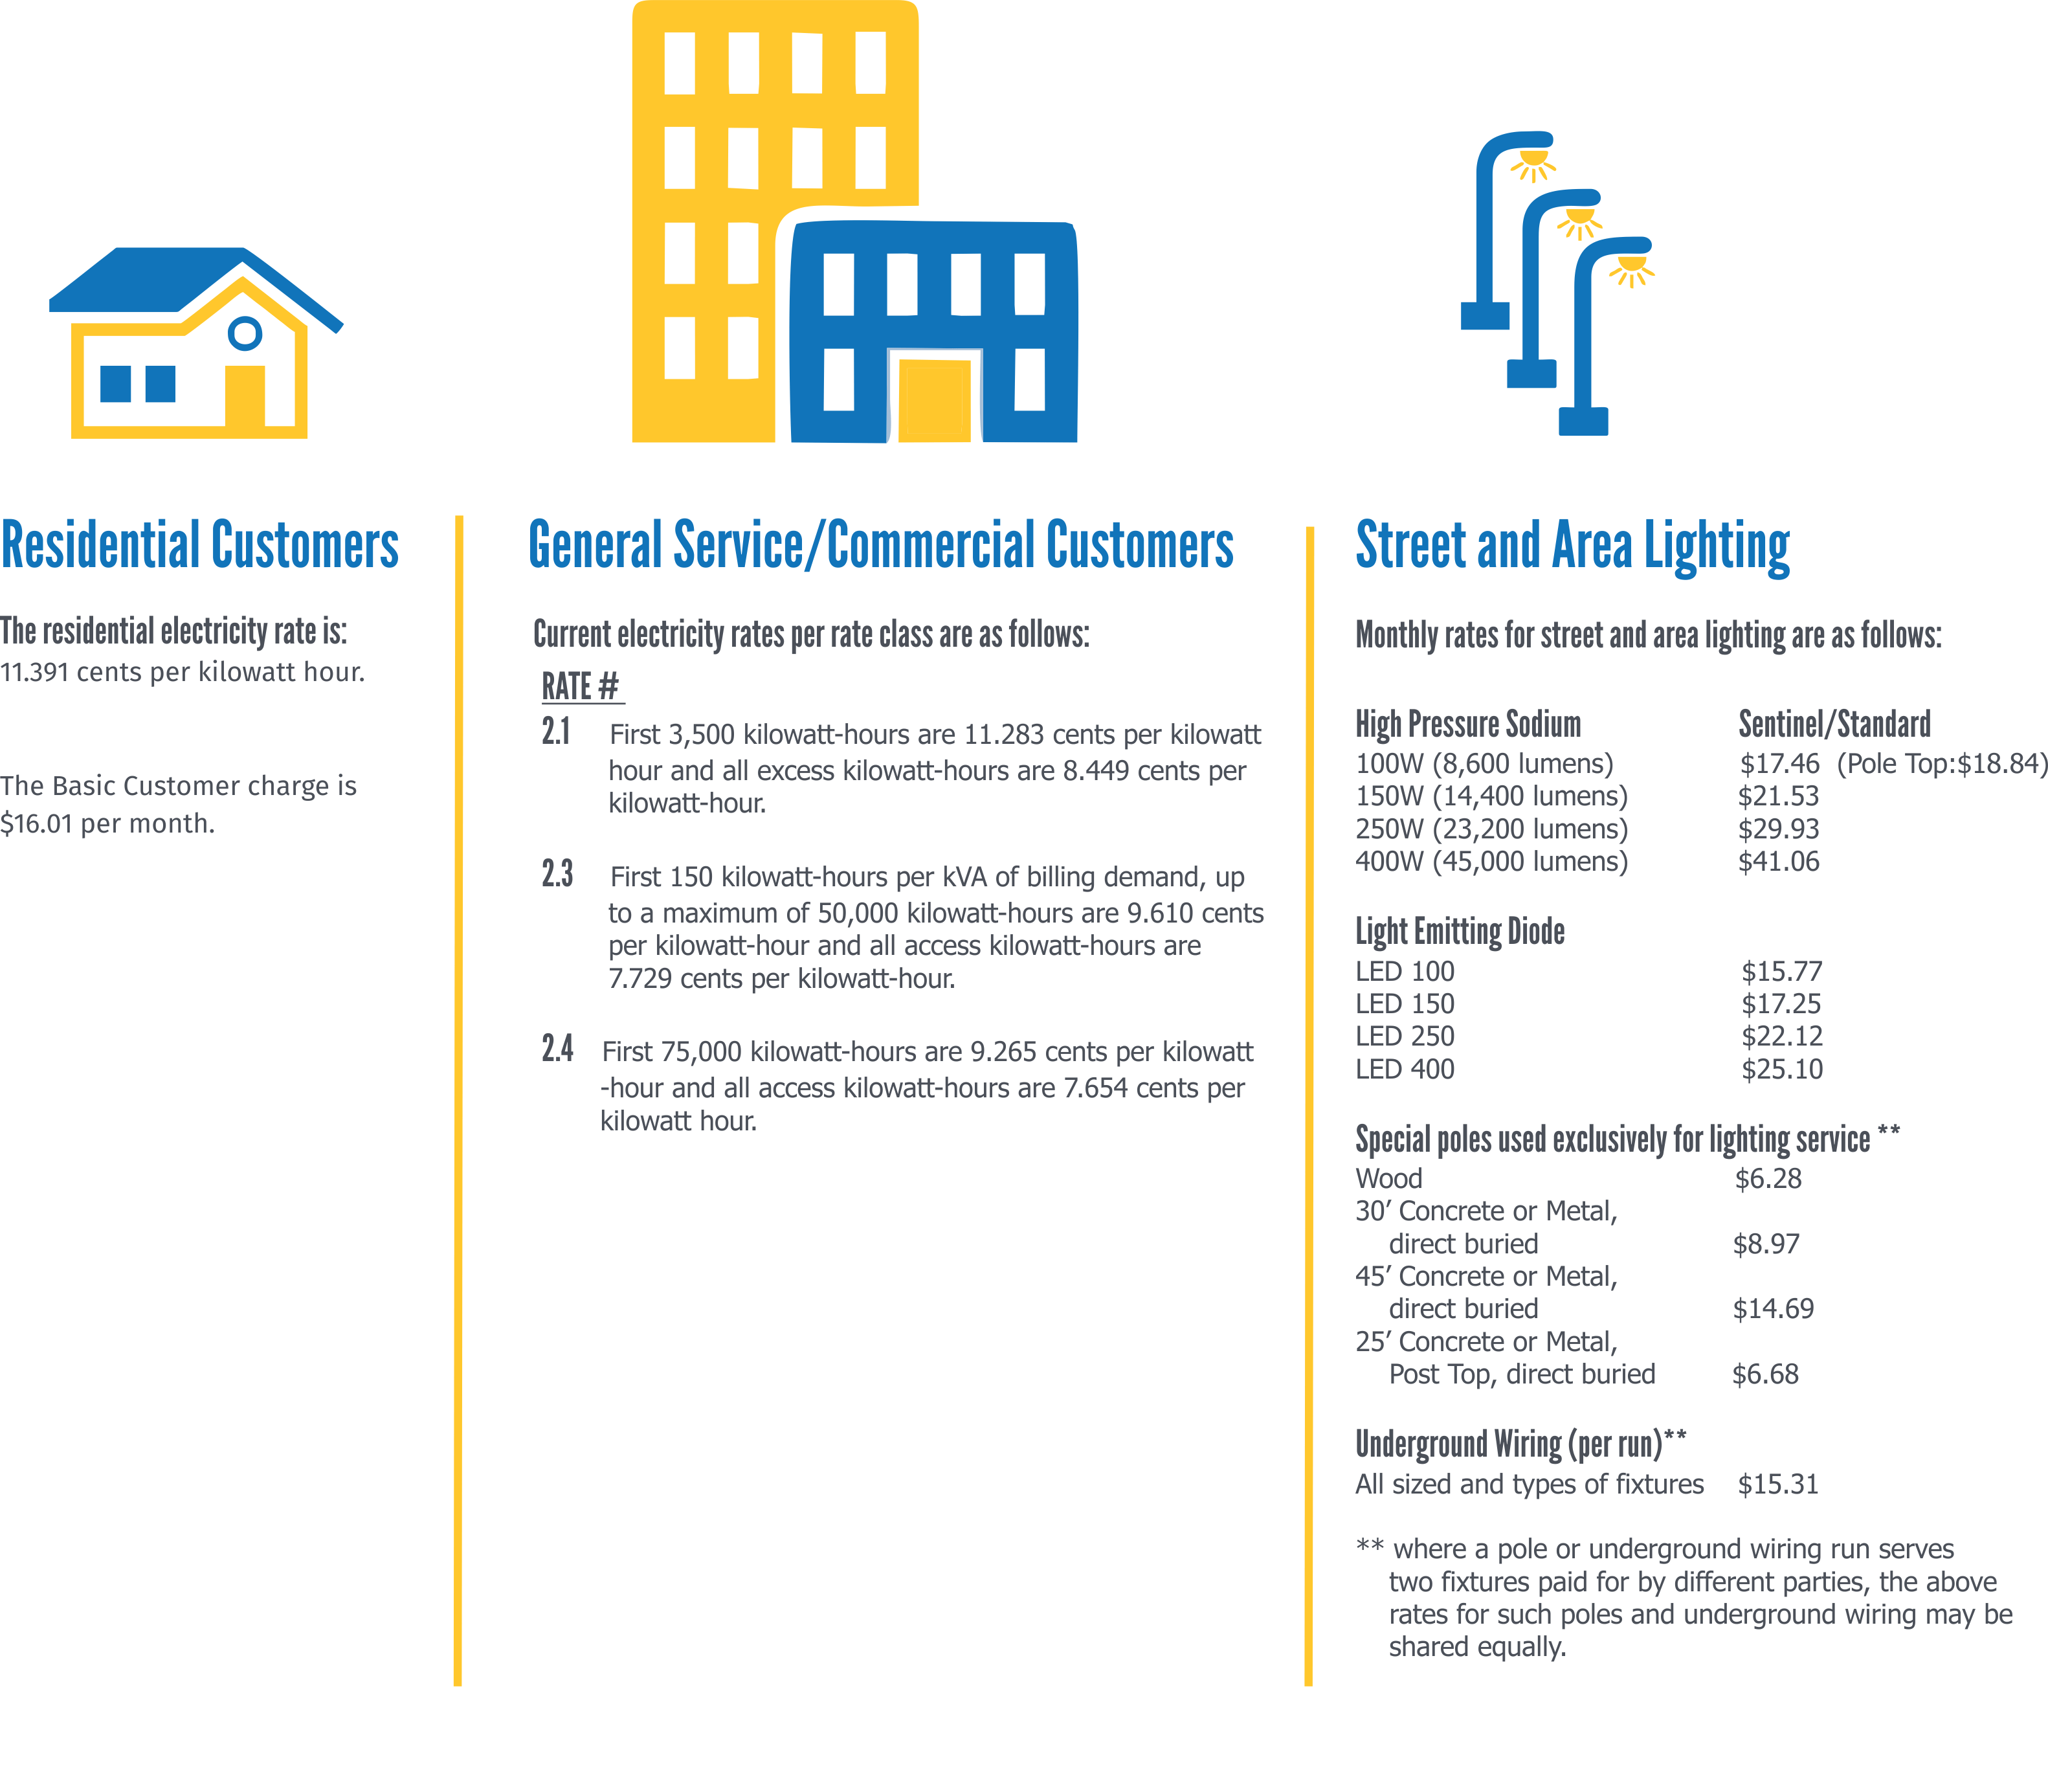 Residential Commerical and Streetlight Rates